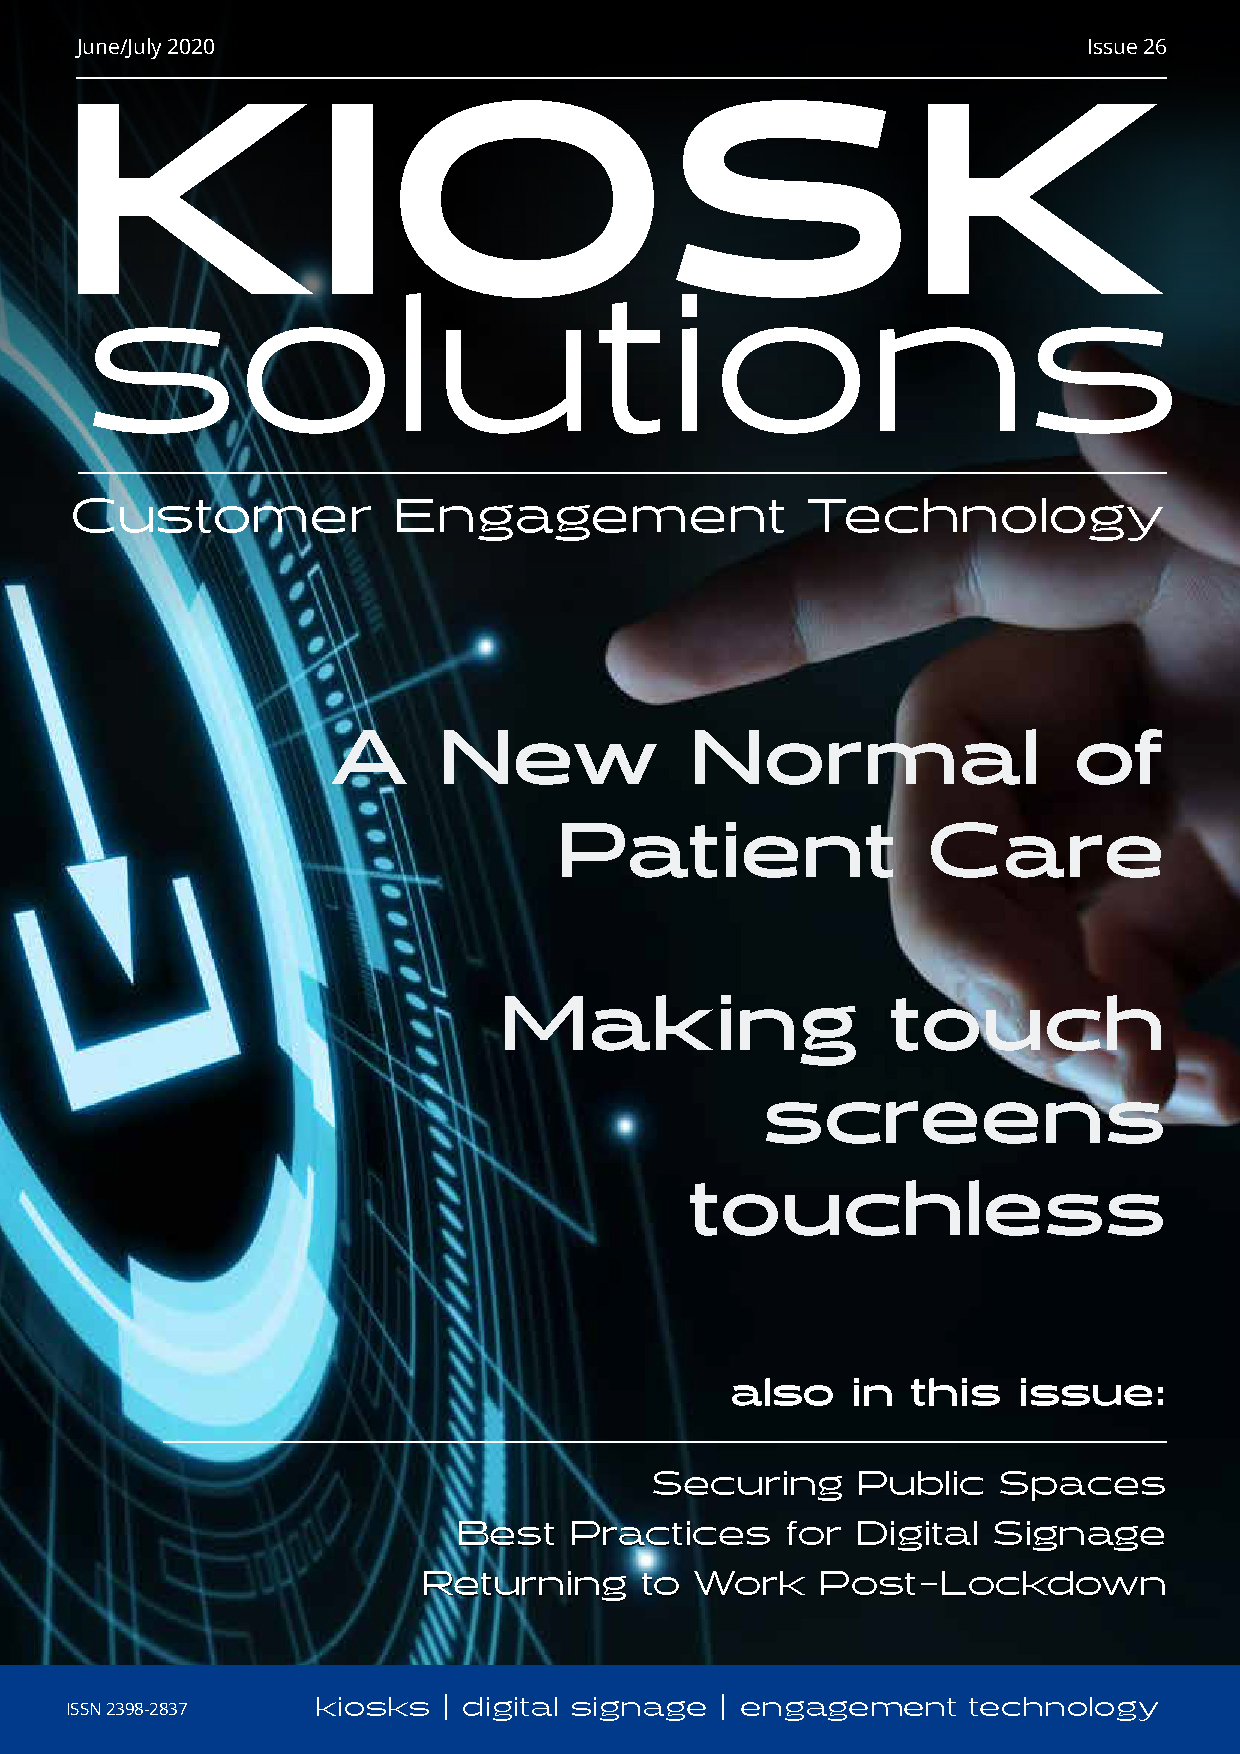 Kiosk Solutions Magazine, June - July 2020 Issue (front cover)